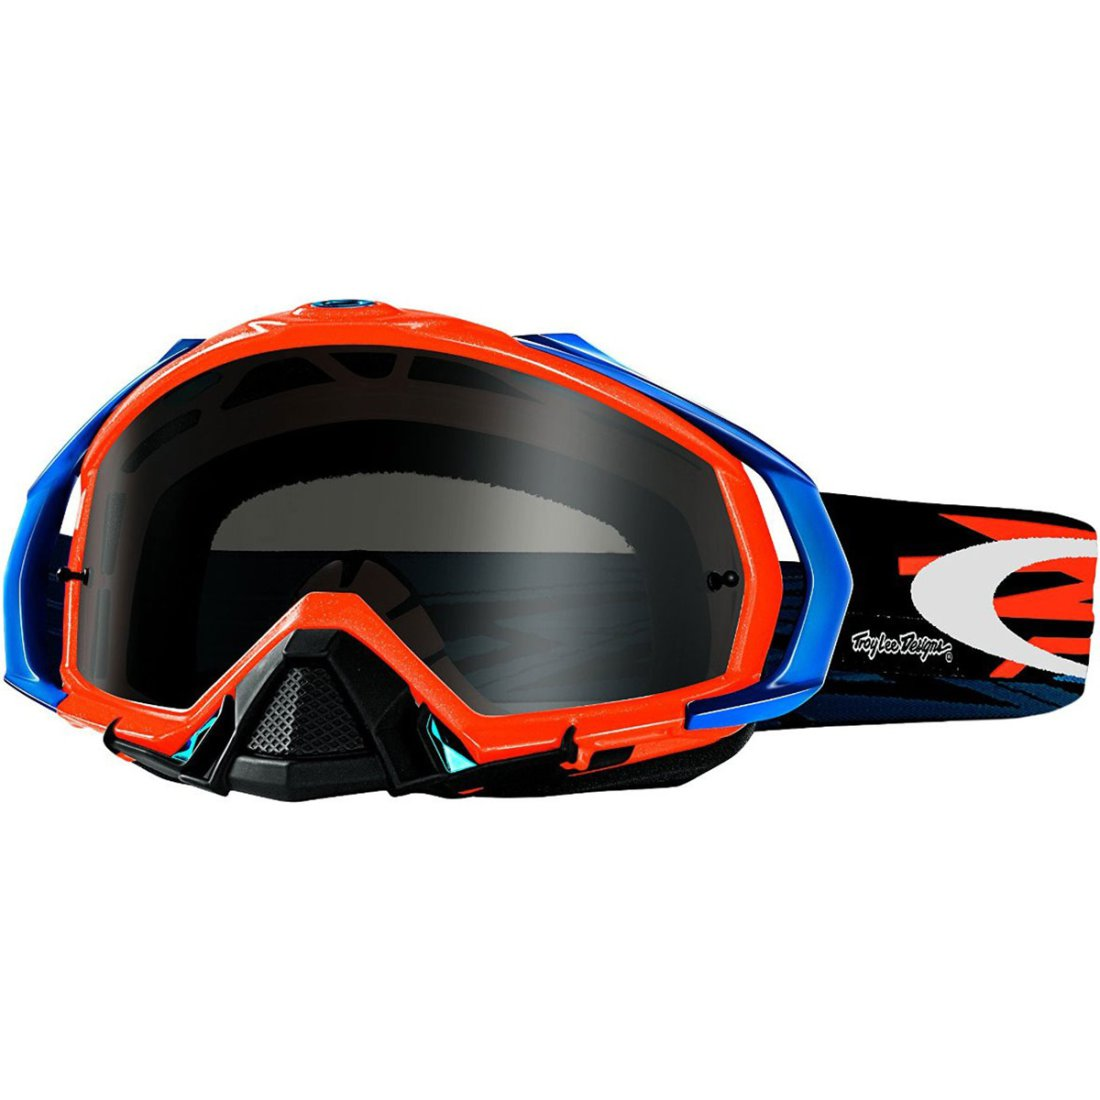 c7b788e4d8 OAKLEY Mayhem Pro MX Troy Lee Designs Zap Orange Dark Grey